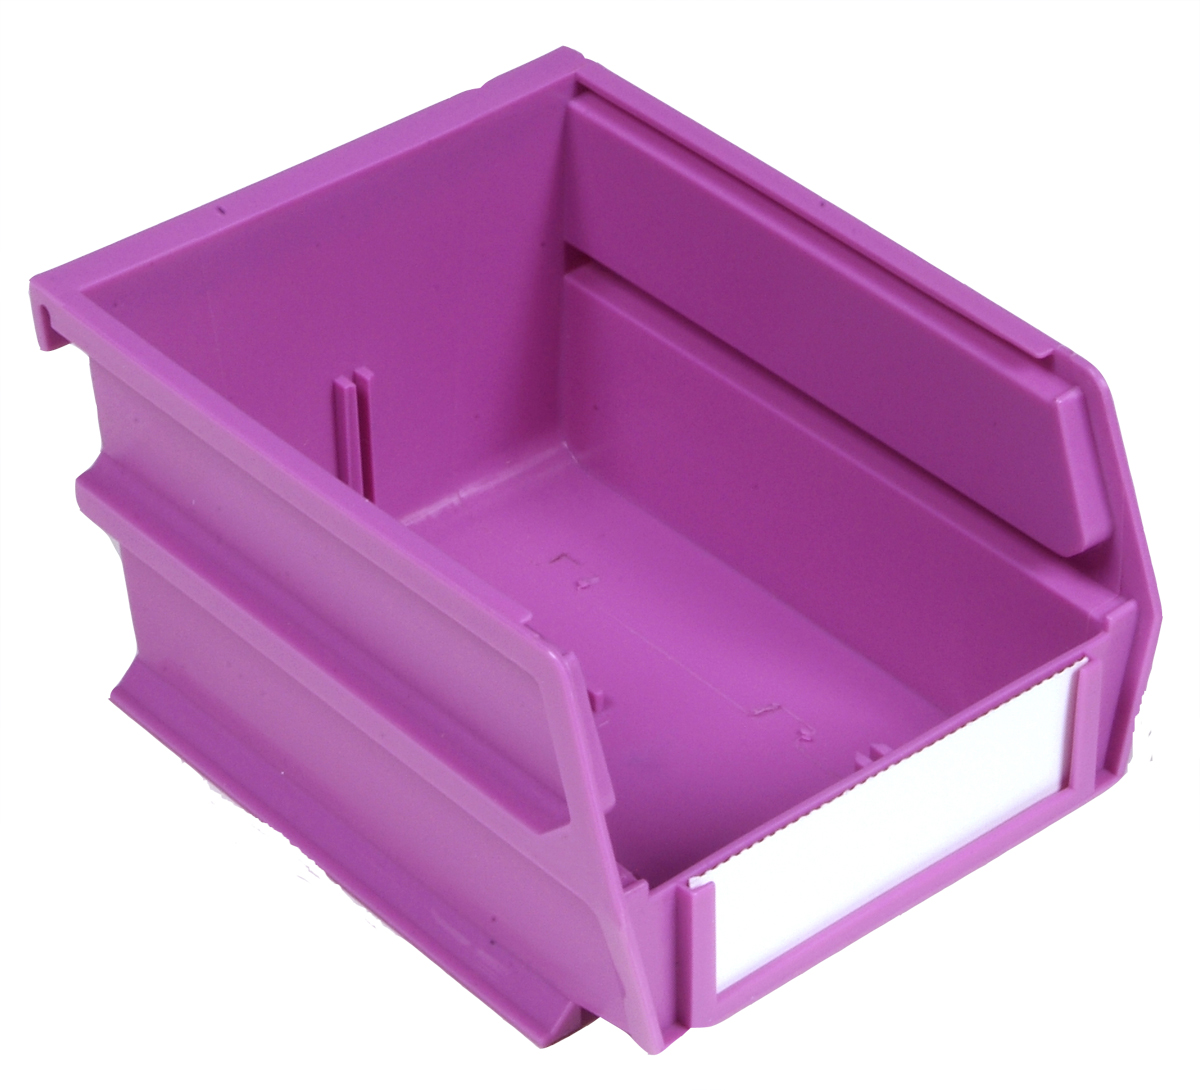 5-3/8 In. L x 4-1/8 In. W x 3 In. H Orchid Stacking, Hanging, Interlocking Polypropylene Bins, 6 CT